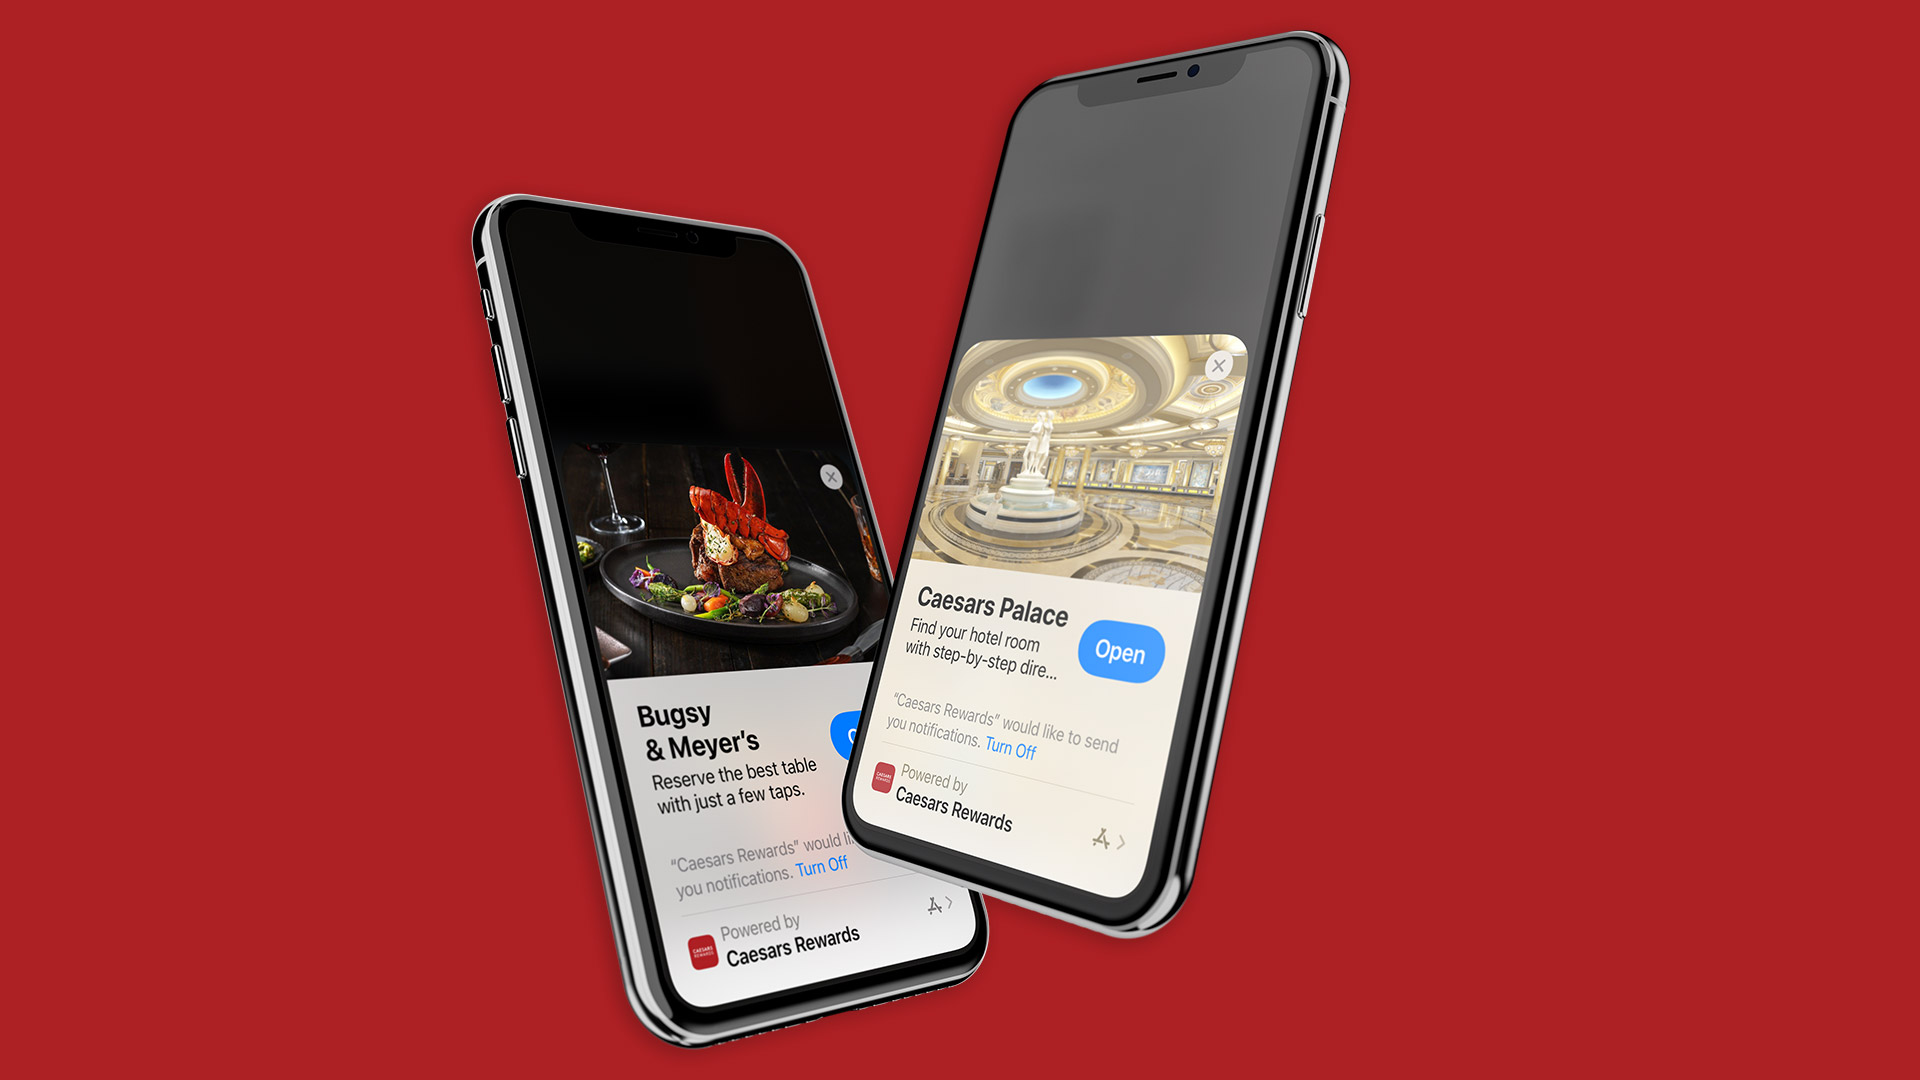 Developed by Bottle Rocket with Notifications by Airship, Caesars Entertainment Unveils Enhancements to its Guest Experience with its First Ever Apple App Clip